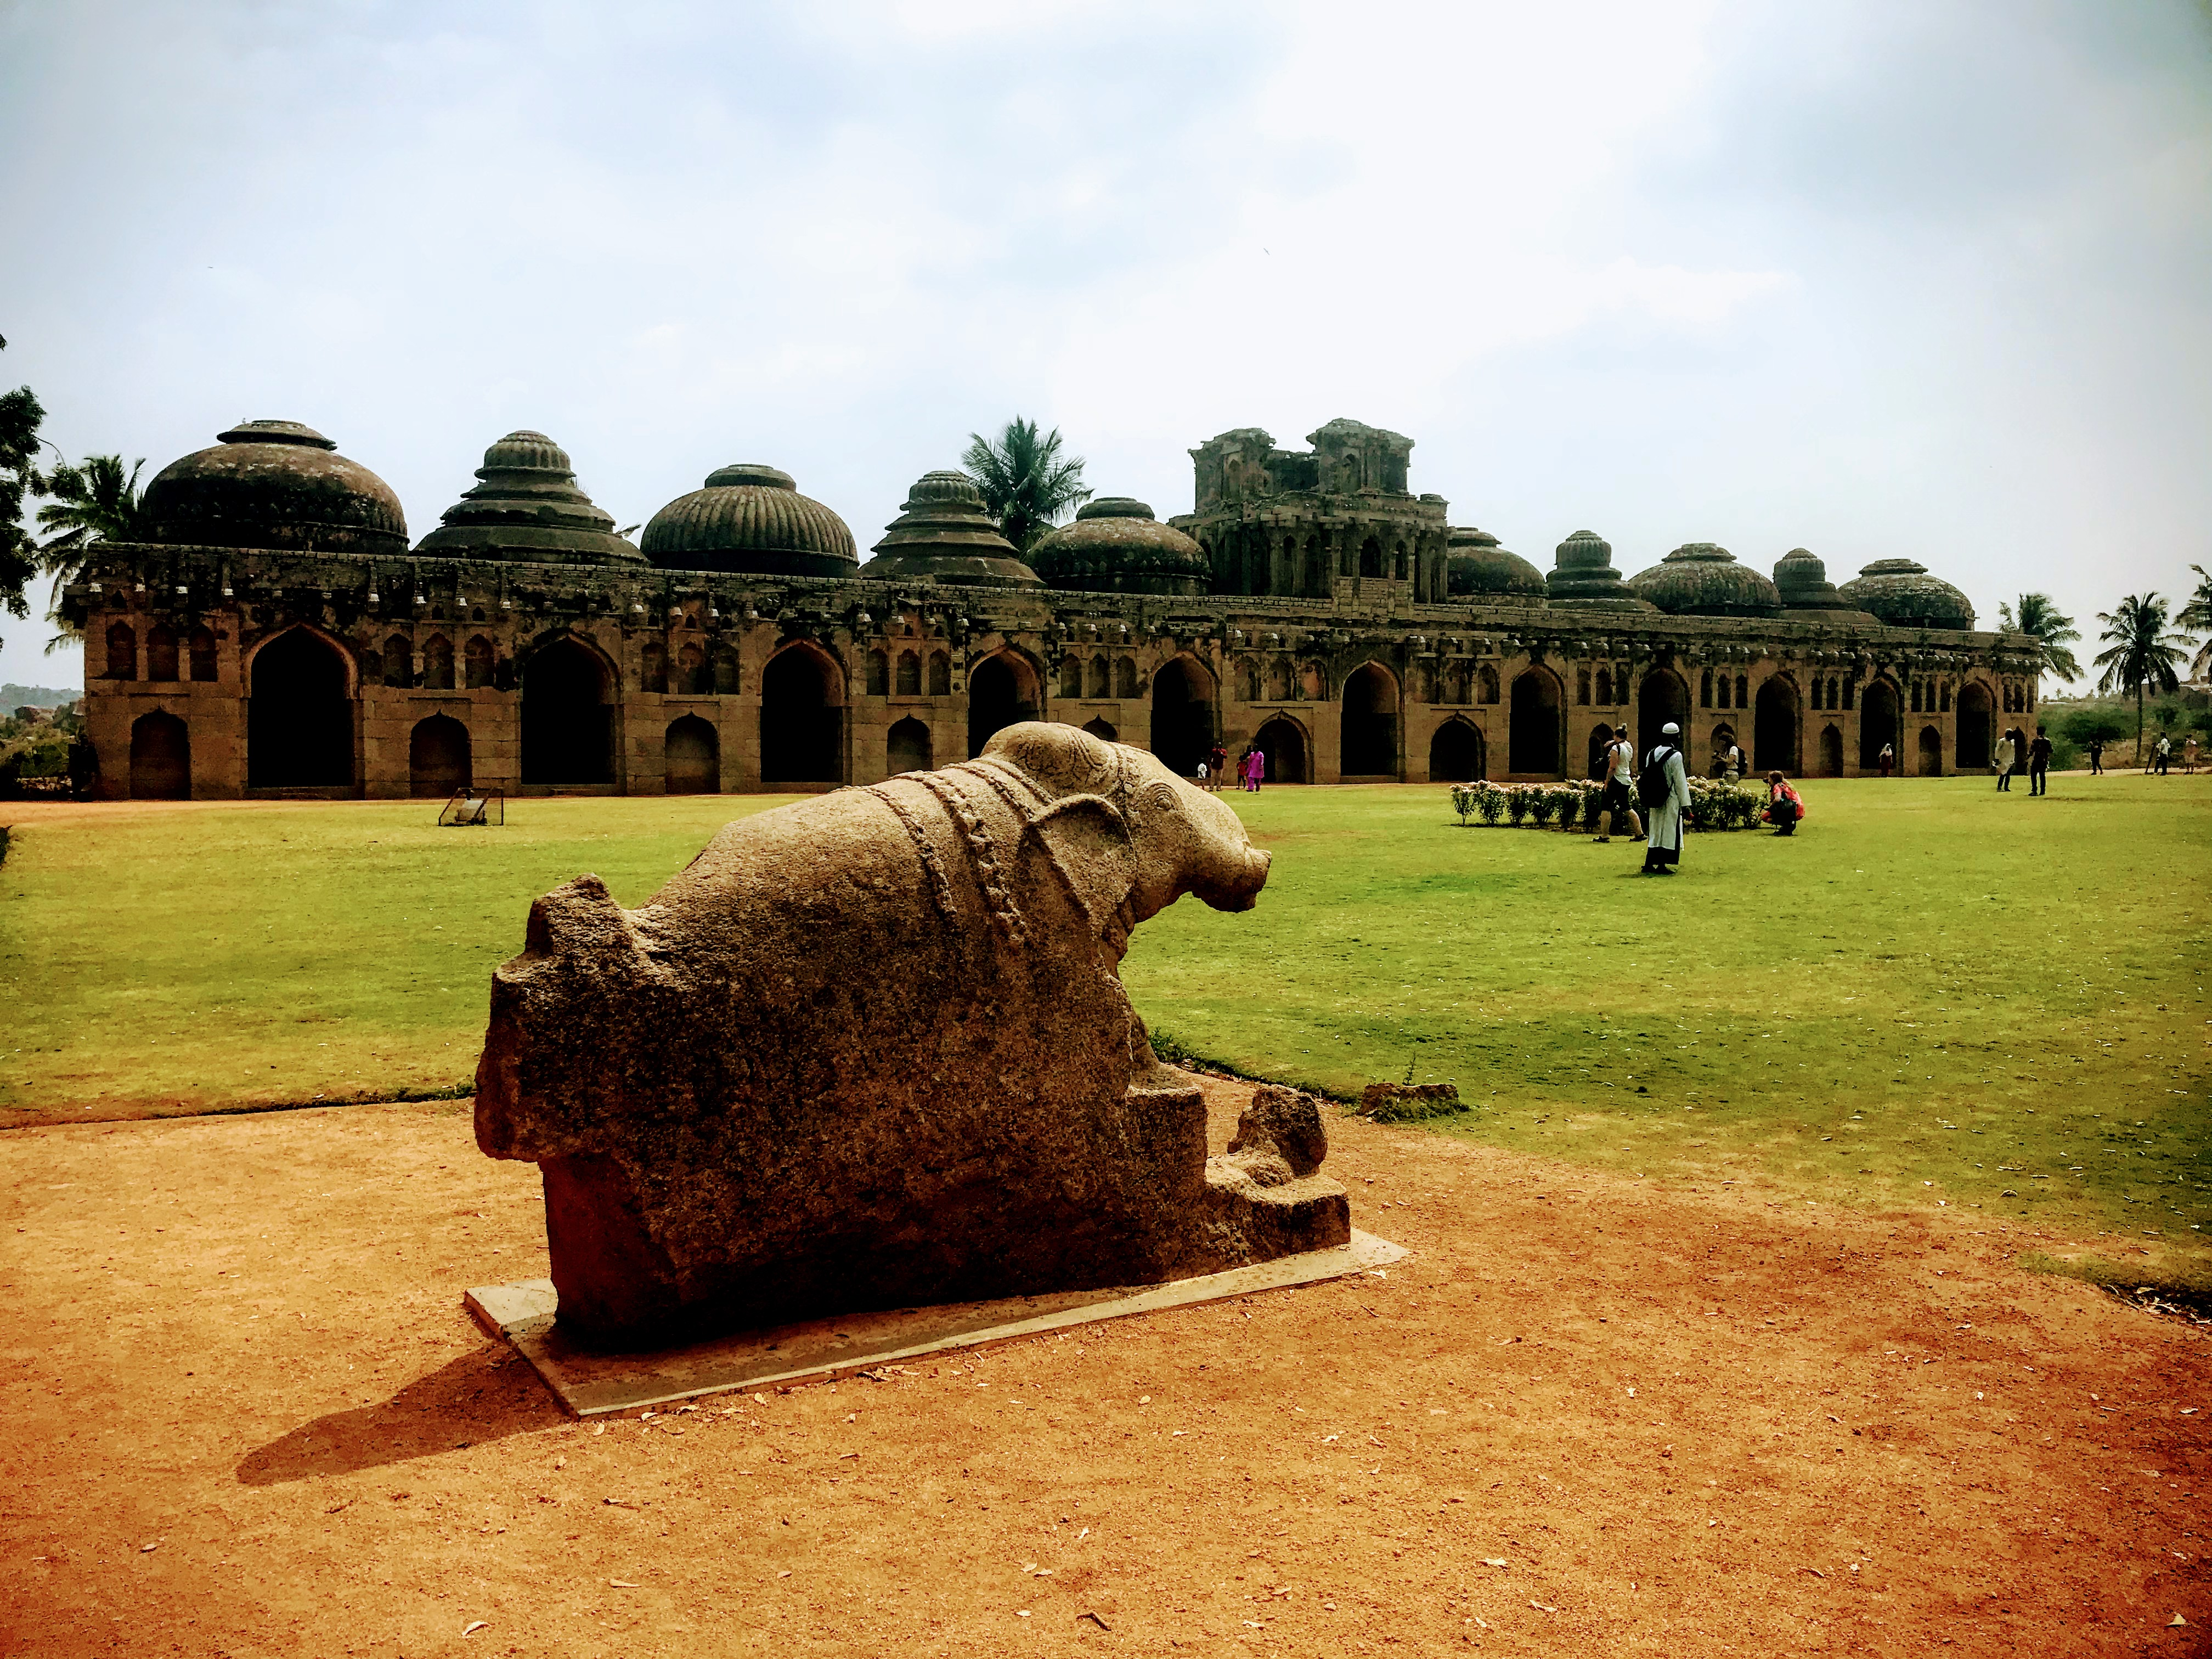 Elephant stable, Hampi, South India